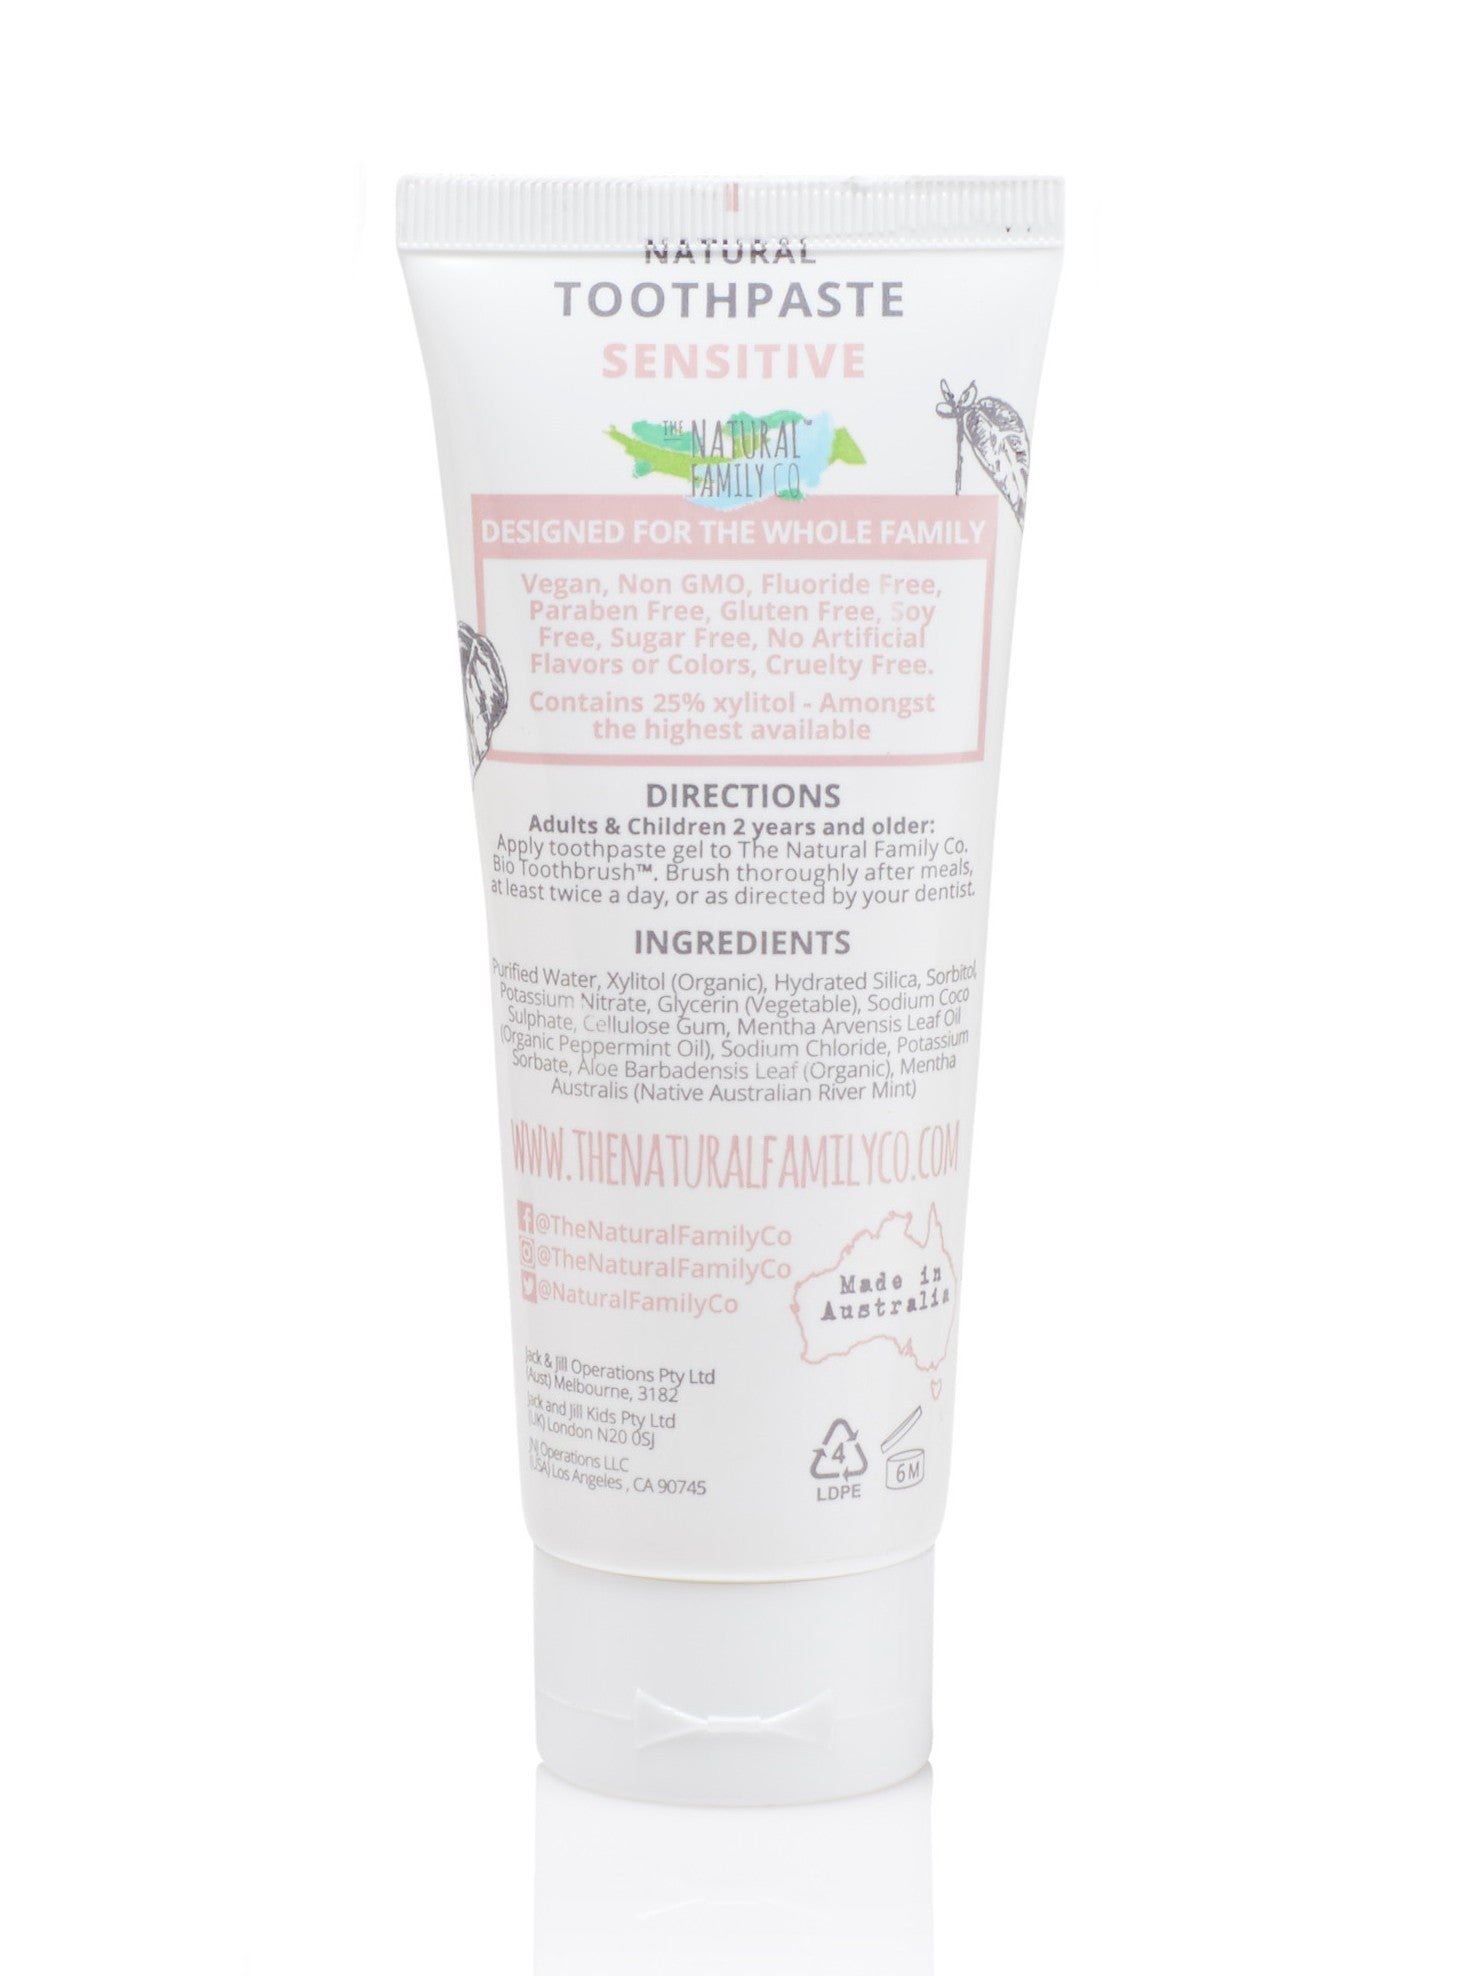 The Natural Family Co Sensitive Toothpaste -Adult